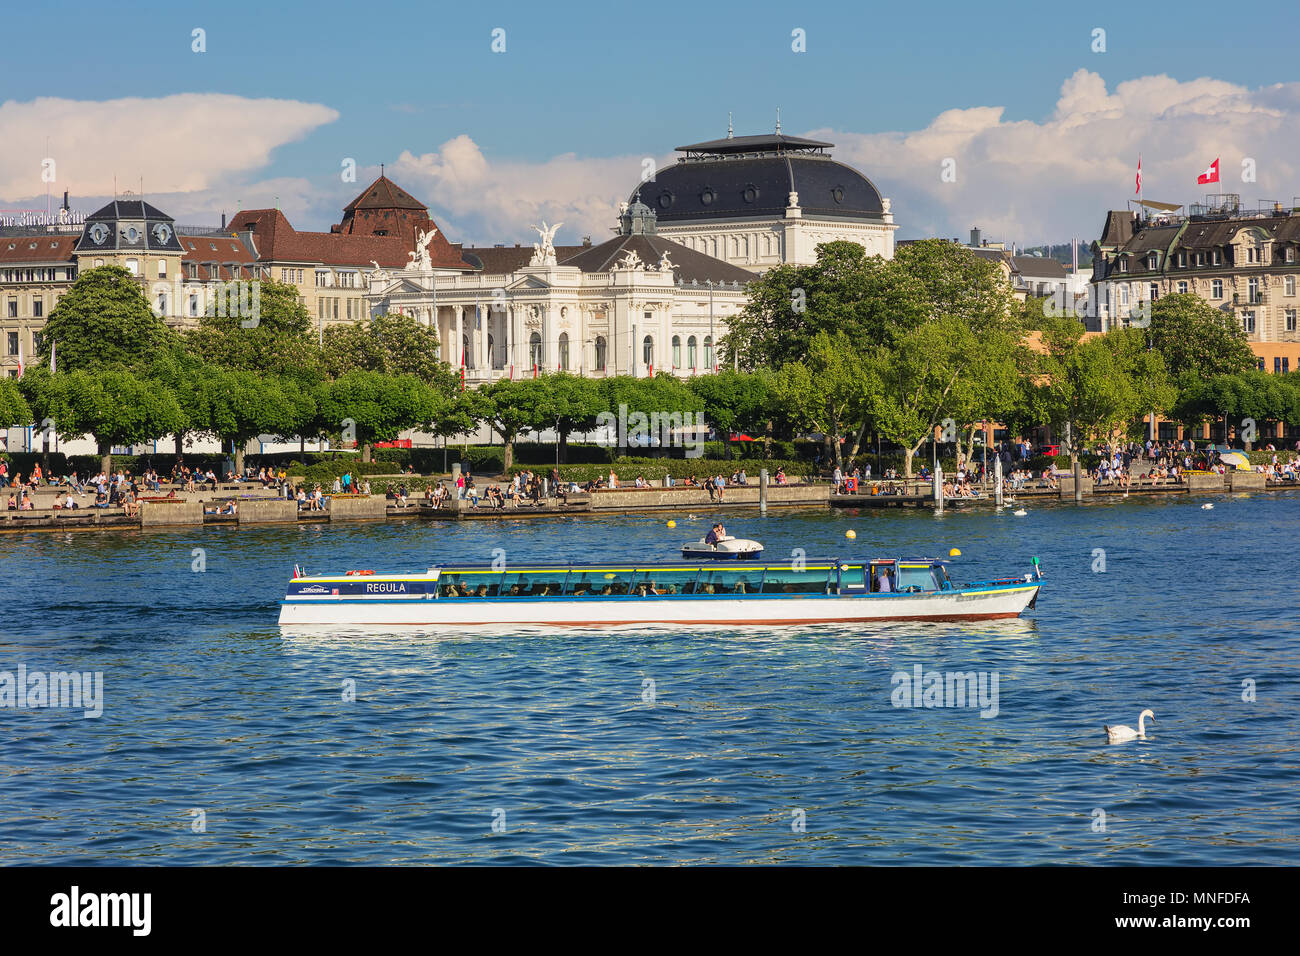 Zurich, Switzerland - May 11, 2018: embankment of Lake Zurich in the city of Zurich, building of the Zurich Opera House. Zurich is the largest city in - Stock Image